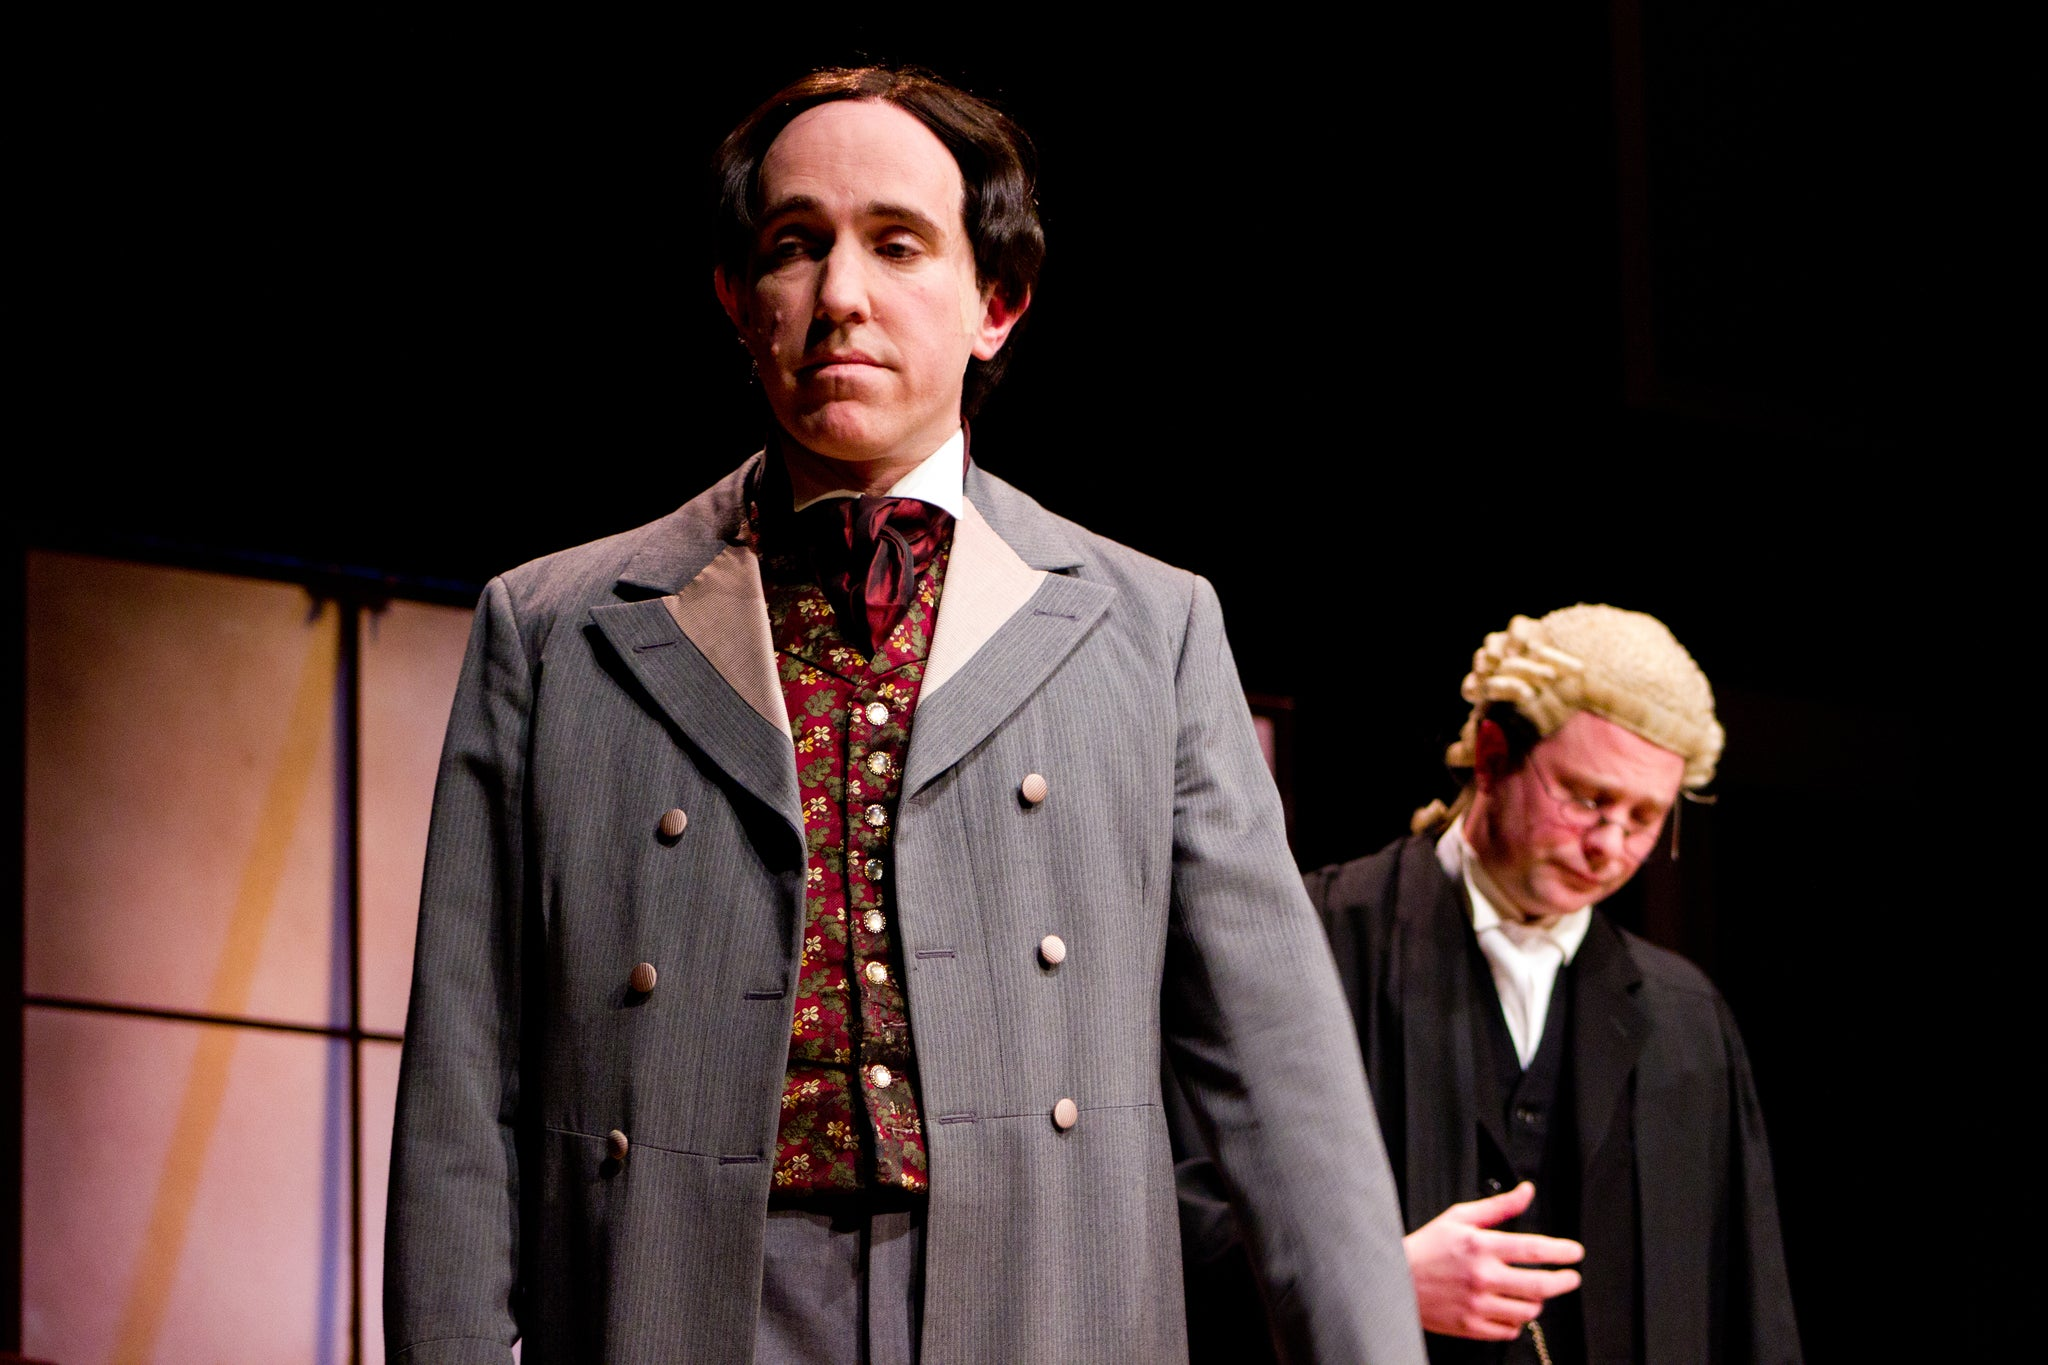 Is Oscar Wilde S Reputation Due For Another Reassessment The Independent The Independent